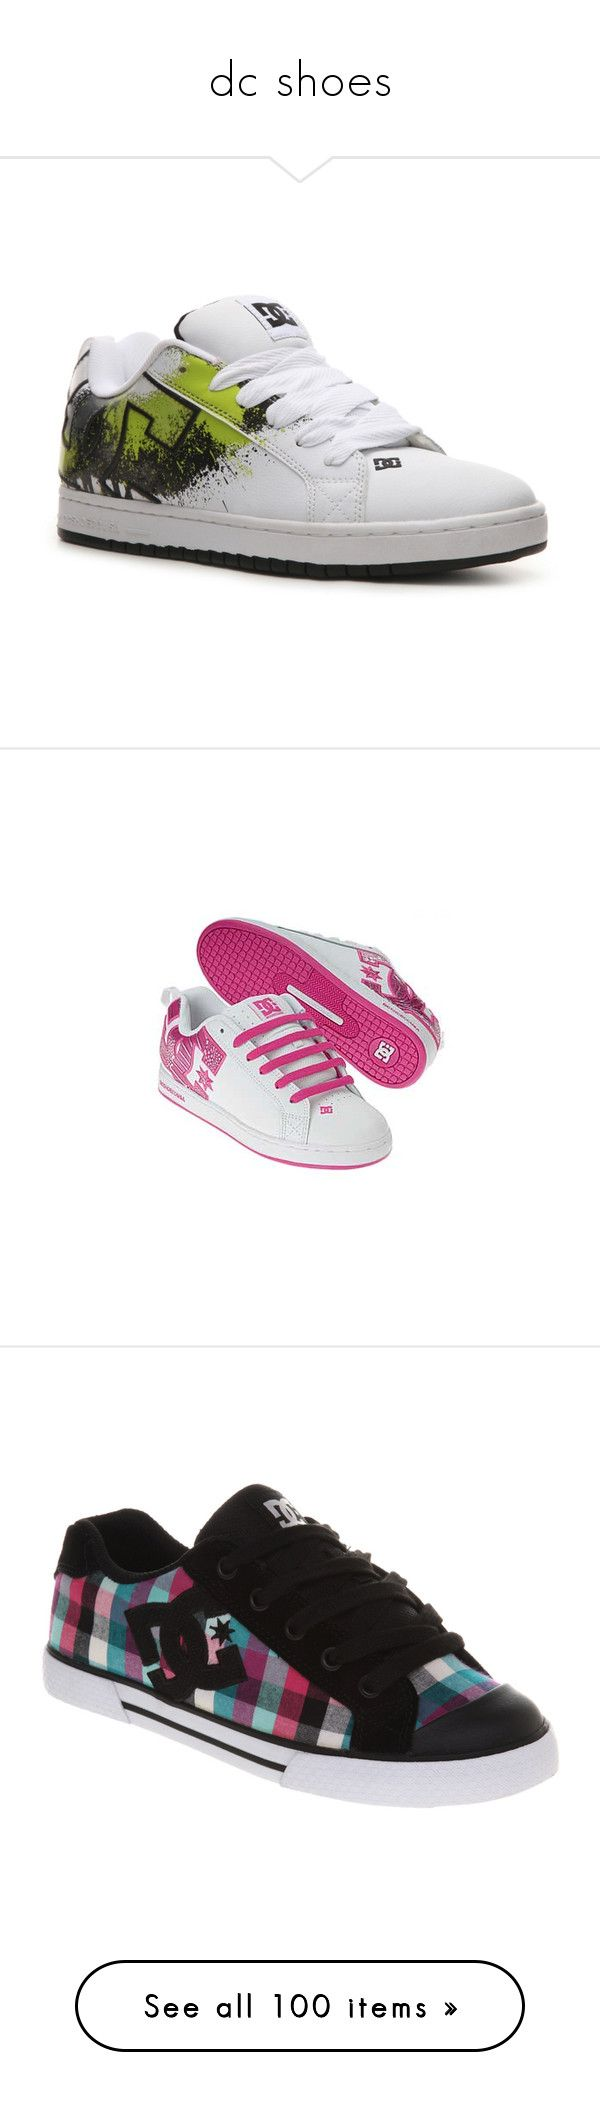 """""""dc shoes"""" by shelbyvengeance ❤ liked on Polyvore featuring men's fashion, men's shoes, men's sneakers, shoes, sneakers, mens skate shoes, pink, sapatos, pink shoes and dc shoes footwear"""